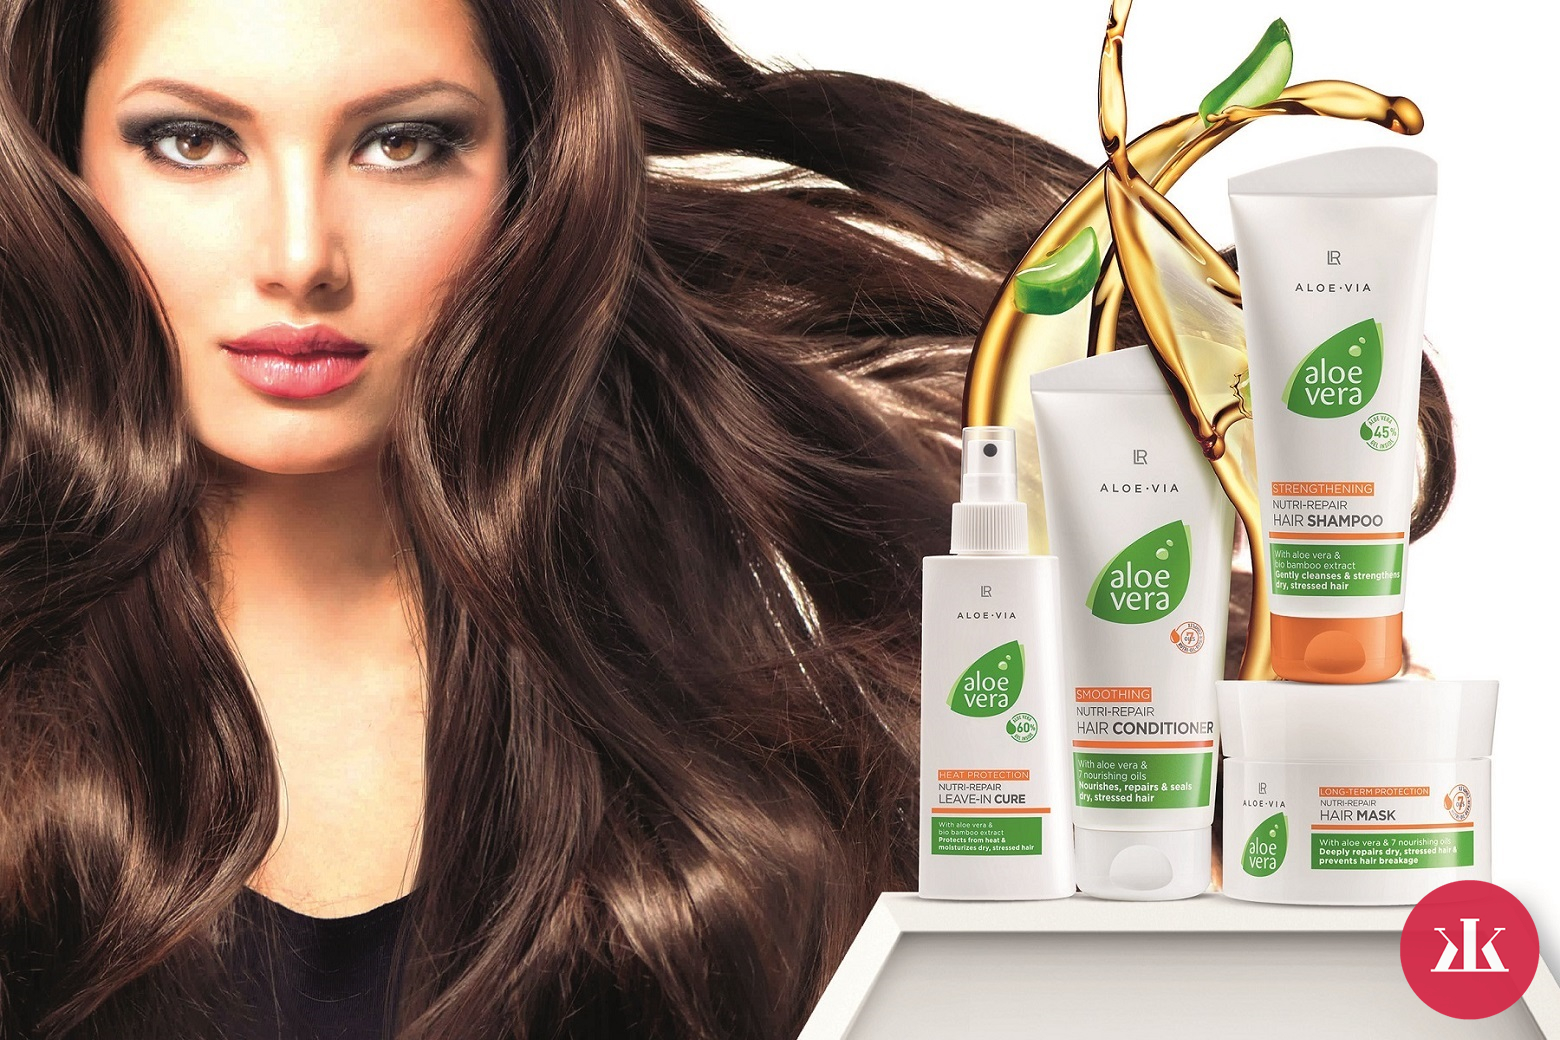 LR ALOE VIA NUTRI-REPAIR HAIR CARE